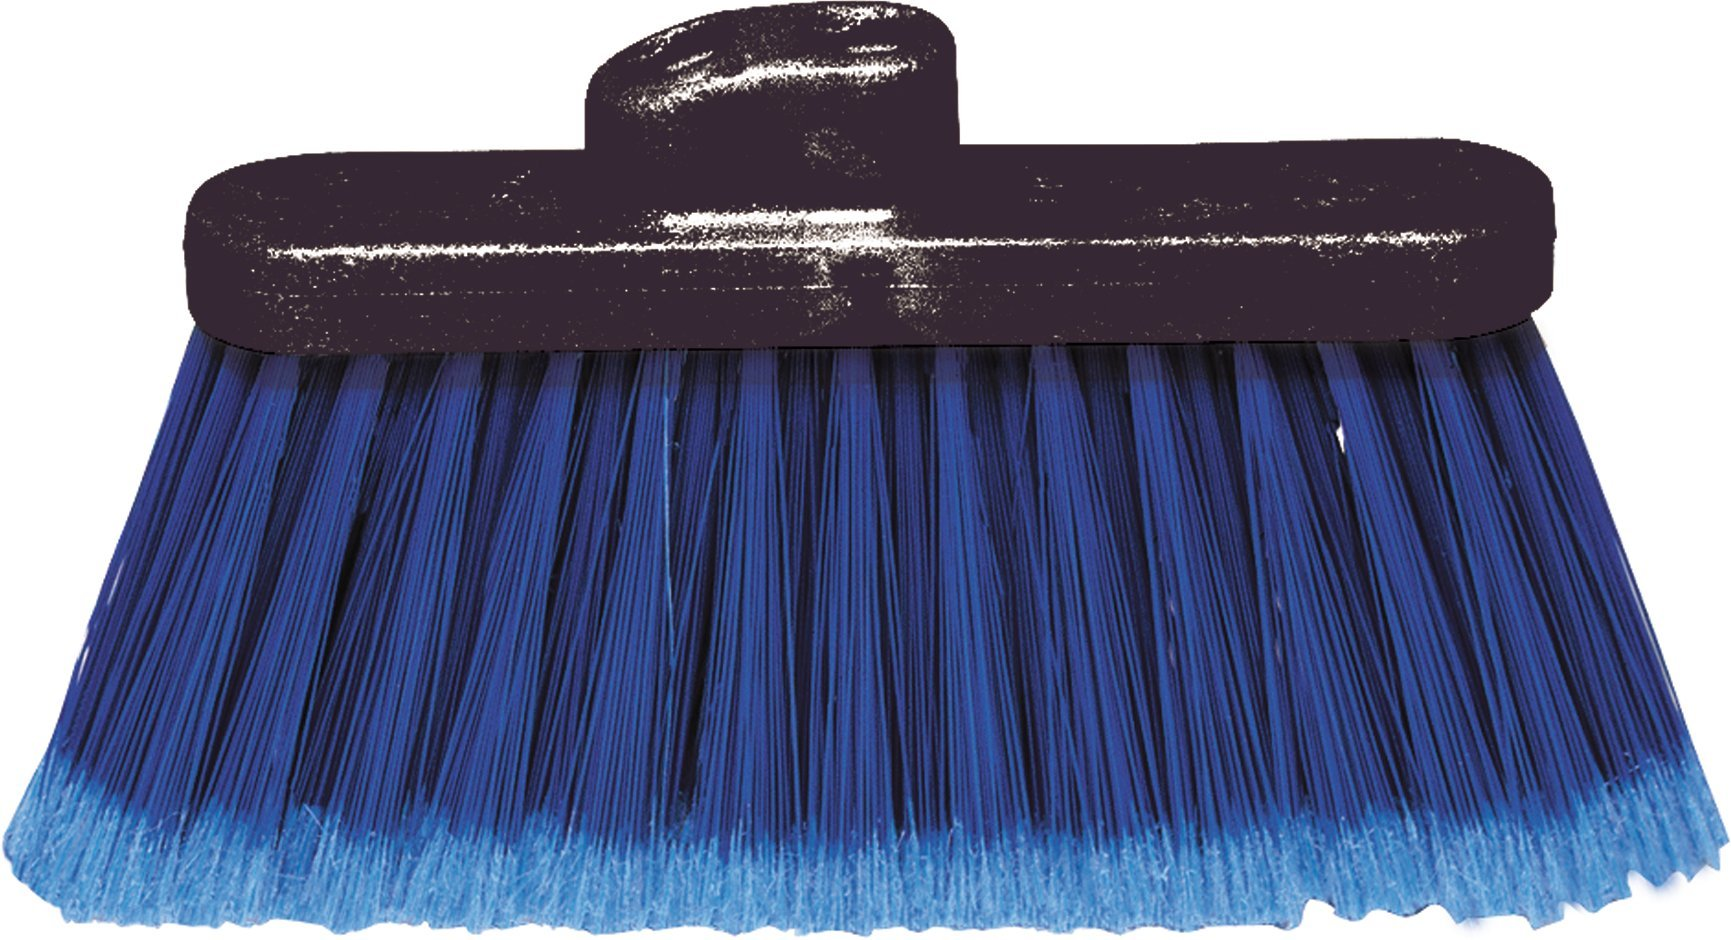 Carlisle 3685314 Duo-Sweep Light Industrial Broom Head, 4'' Long Blue Synthetic Bristles, 13'' W x 7'' H Overall (Case of 12) by Carlisle (Image #2)